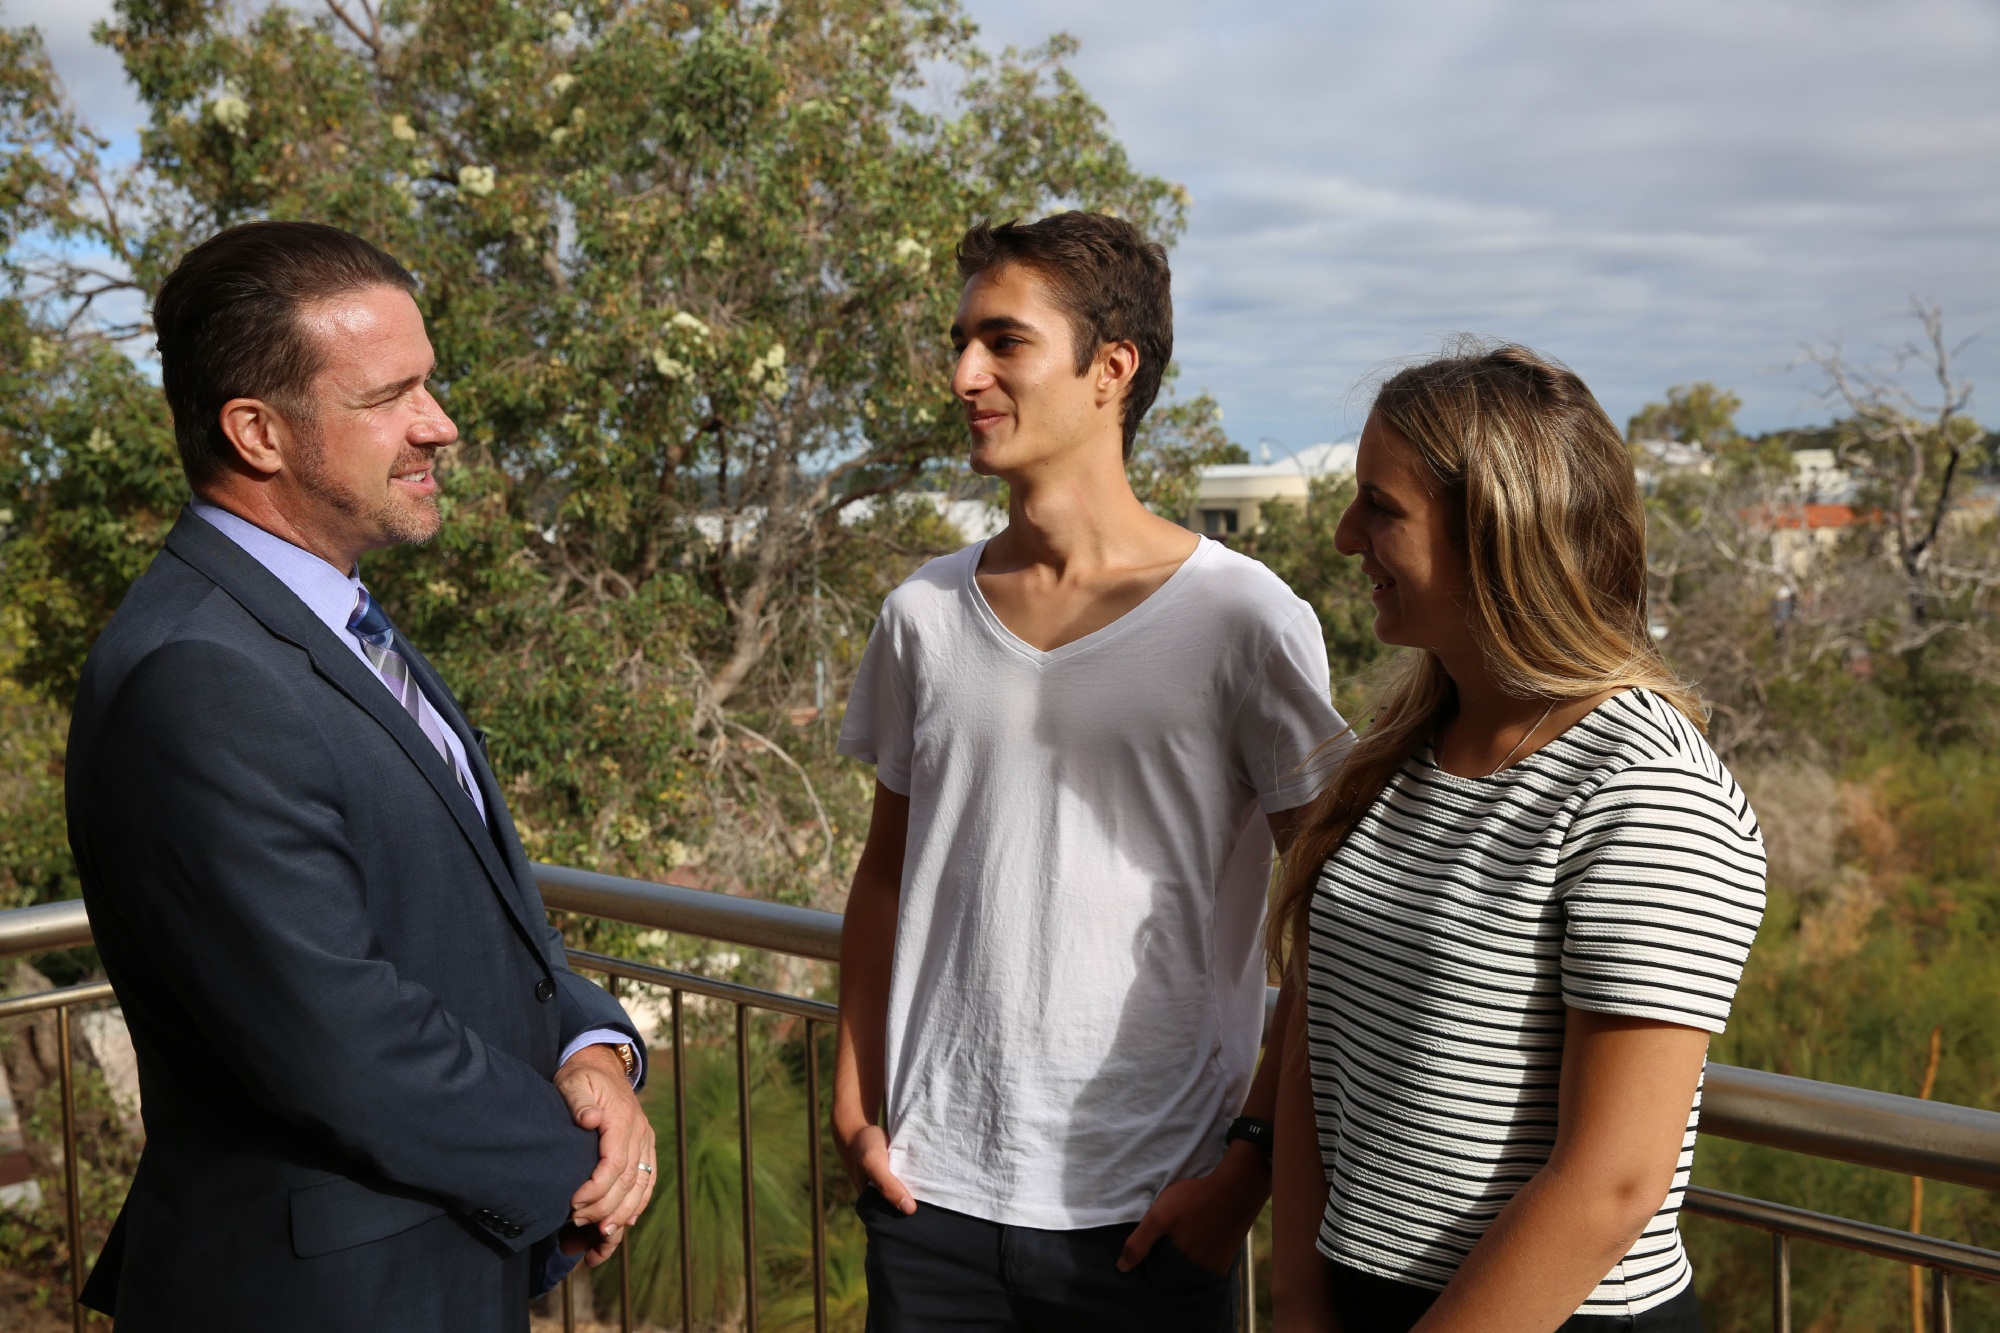 Joondalup Mayor Troy Pickard chats to volunteers Baptiste Riches and Megan Walton.